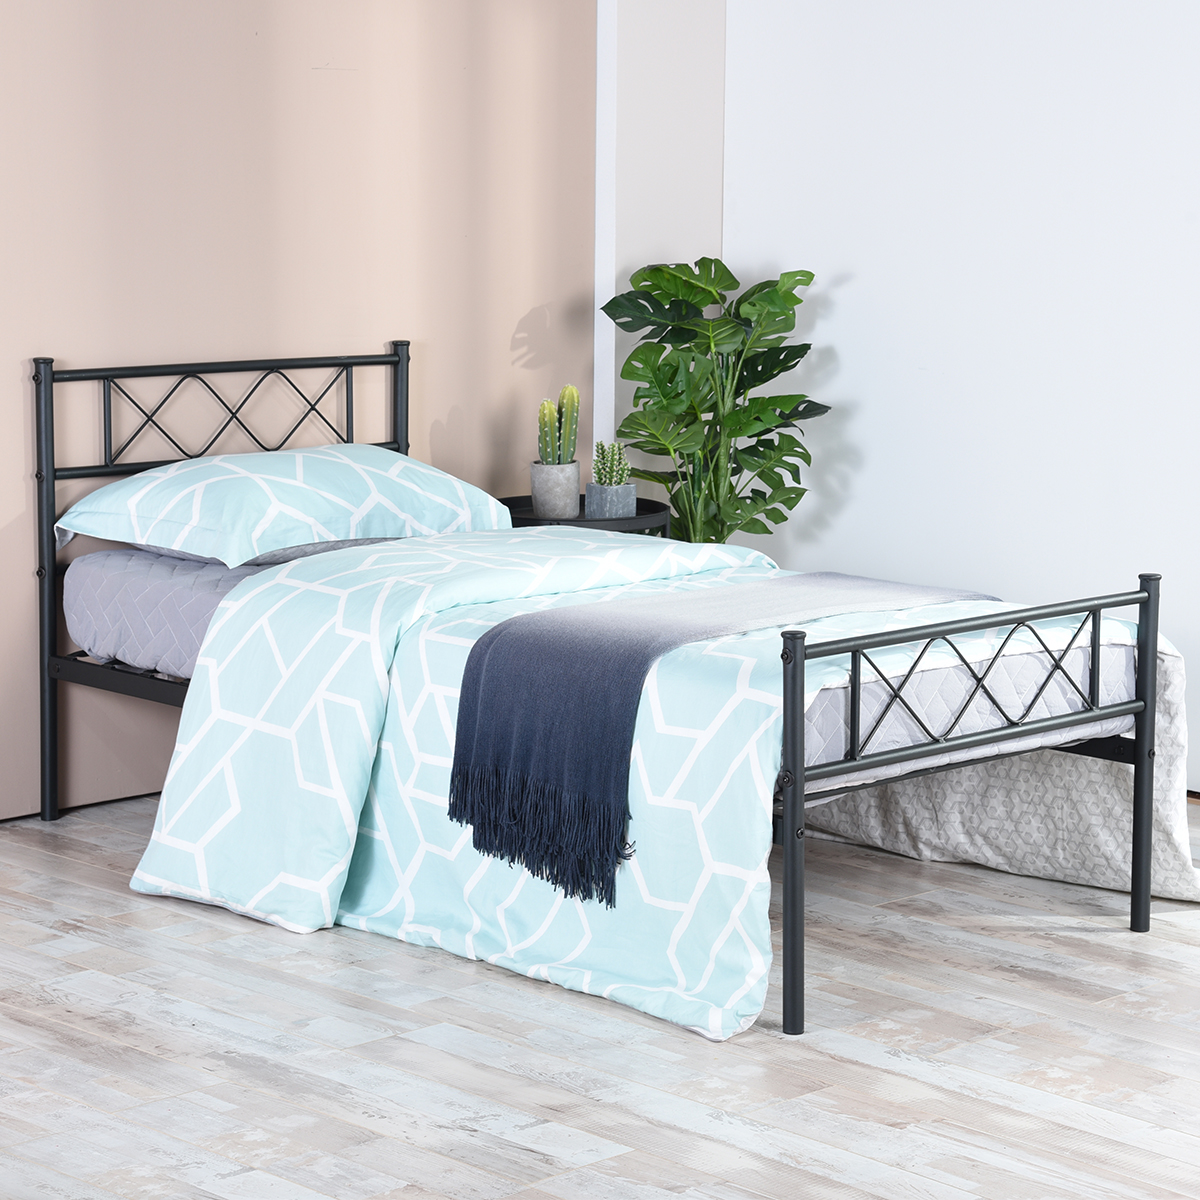 easy set up premium metal bed frame platform box spring replacement with headboard footboard